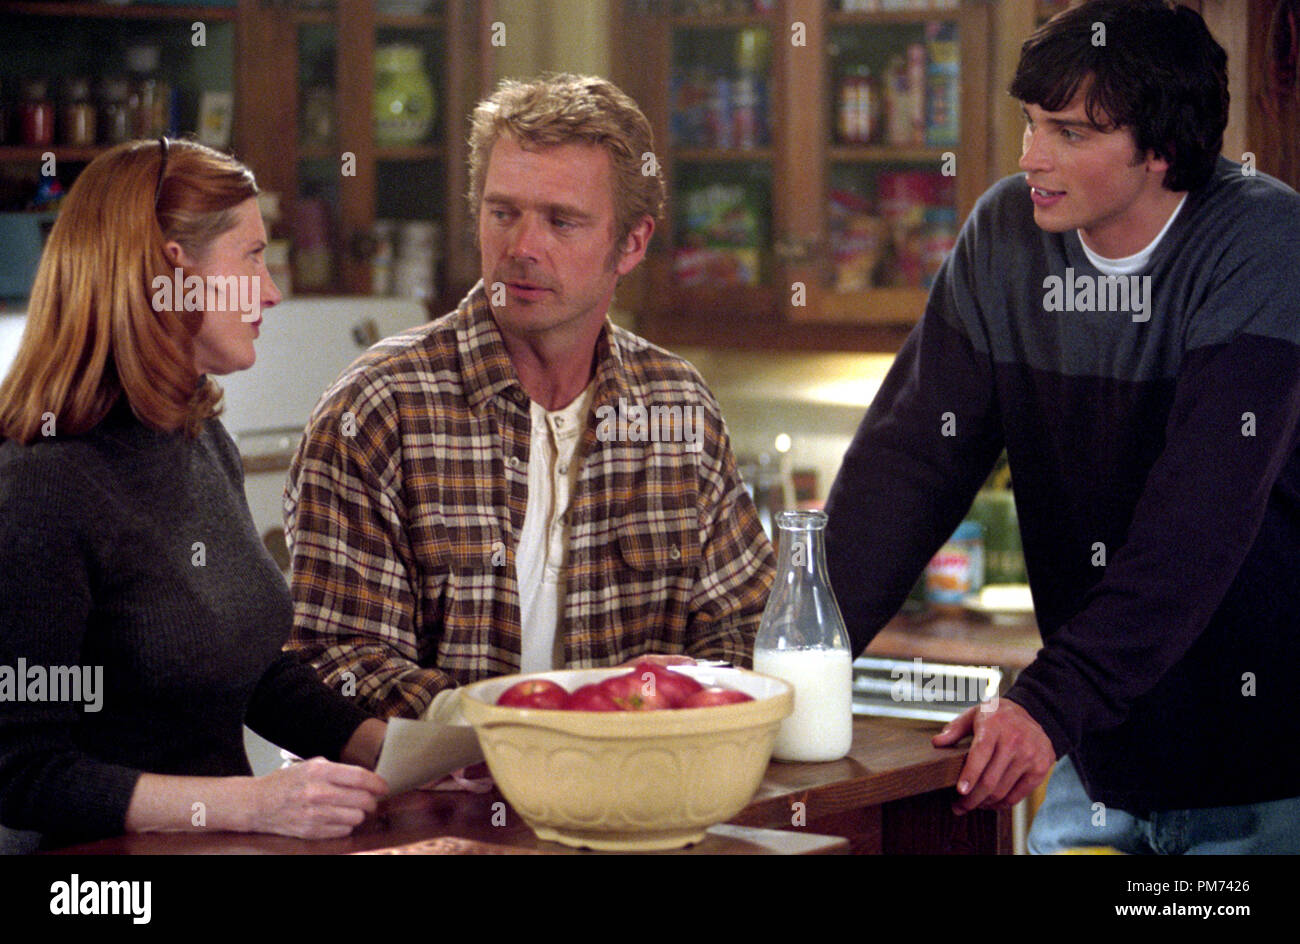 """Film Still / Publicity Still from """"Smallville"""" (Episode: Metamorphosis) Annette O'Toole, John Schneider, Tom Welling 2001 Photo credit: Brian Cyr    File Reference # 30847338THA  For Editorial Use Only -  All Rights Reserved Stock Photo"""